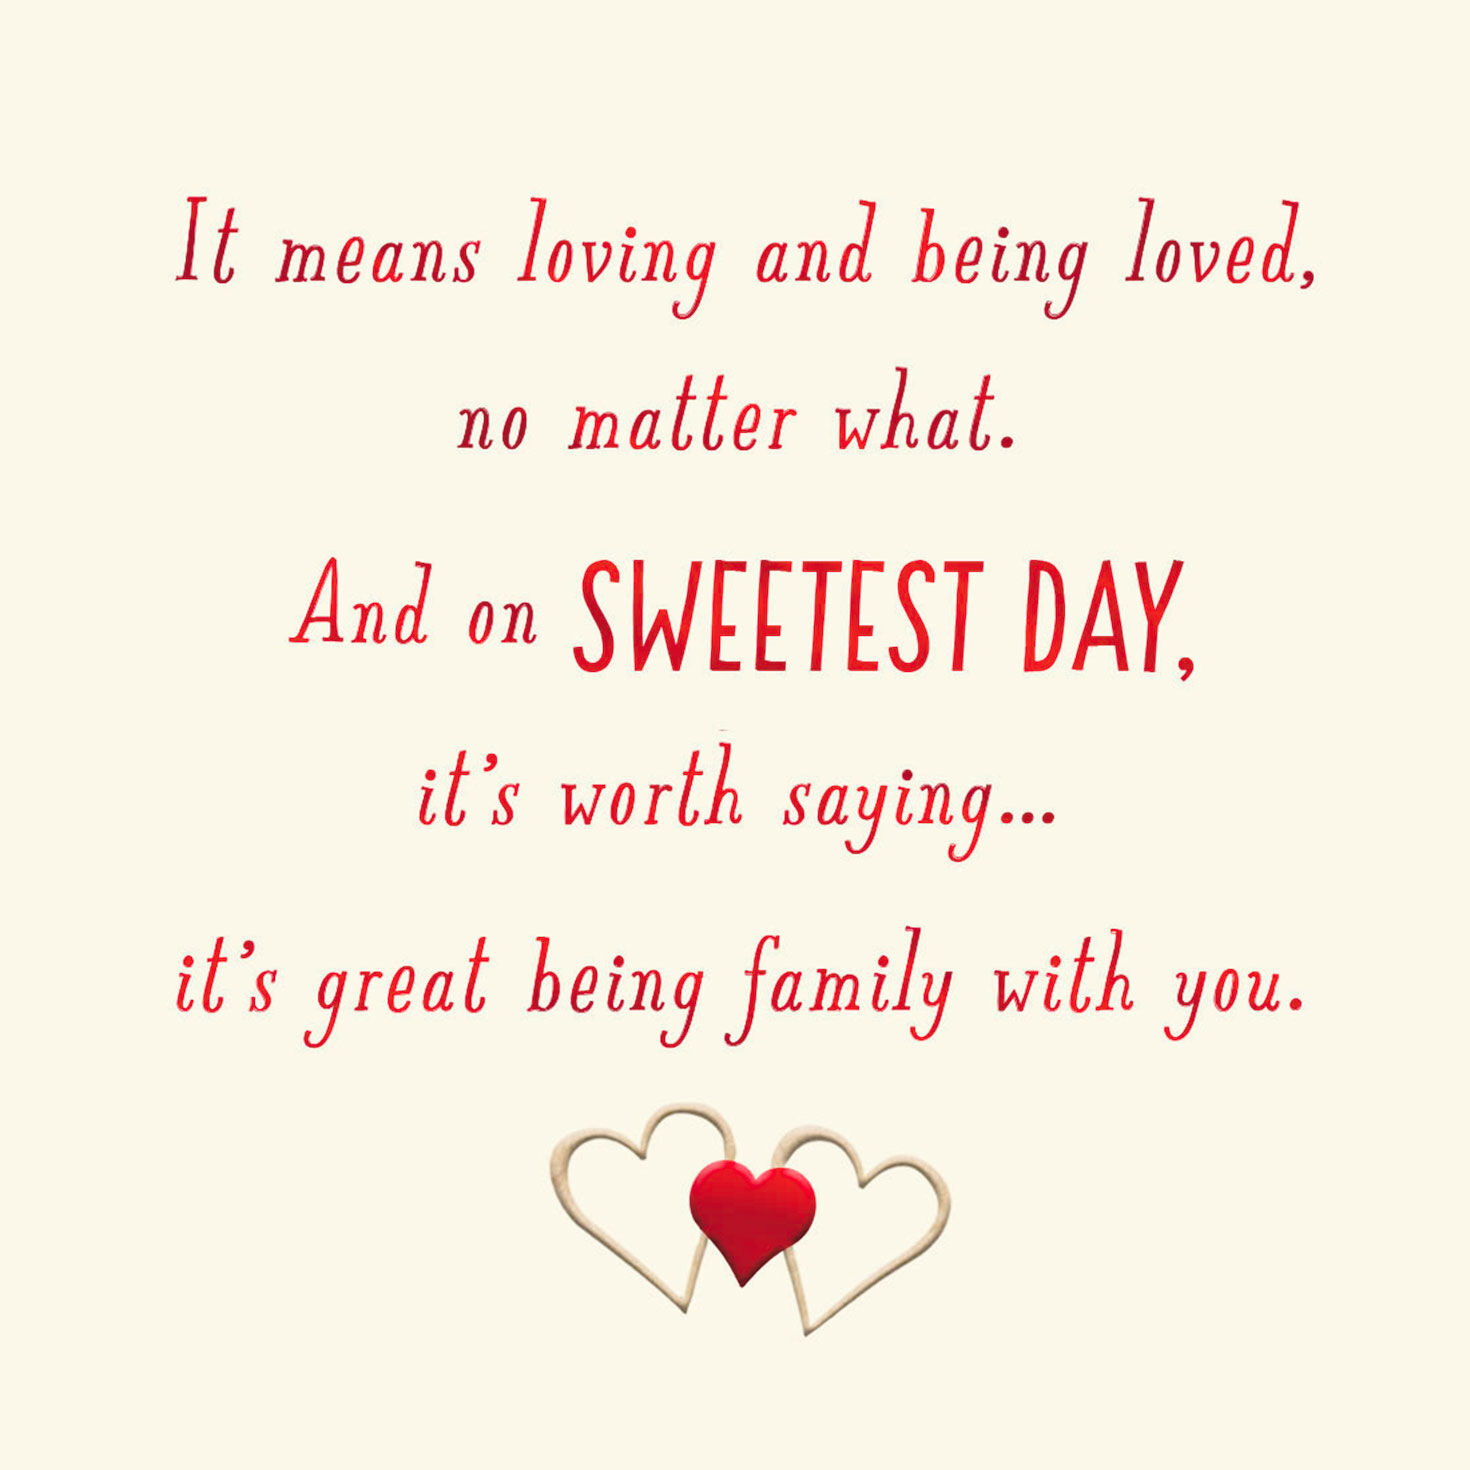 photo regarding Sweetest Day Cards Printable referred to as Sweetest Working day Playing cards Hallmark